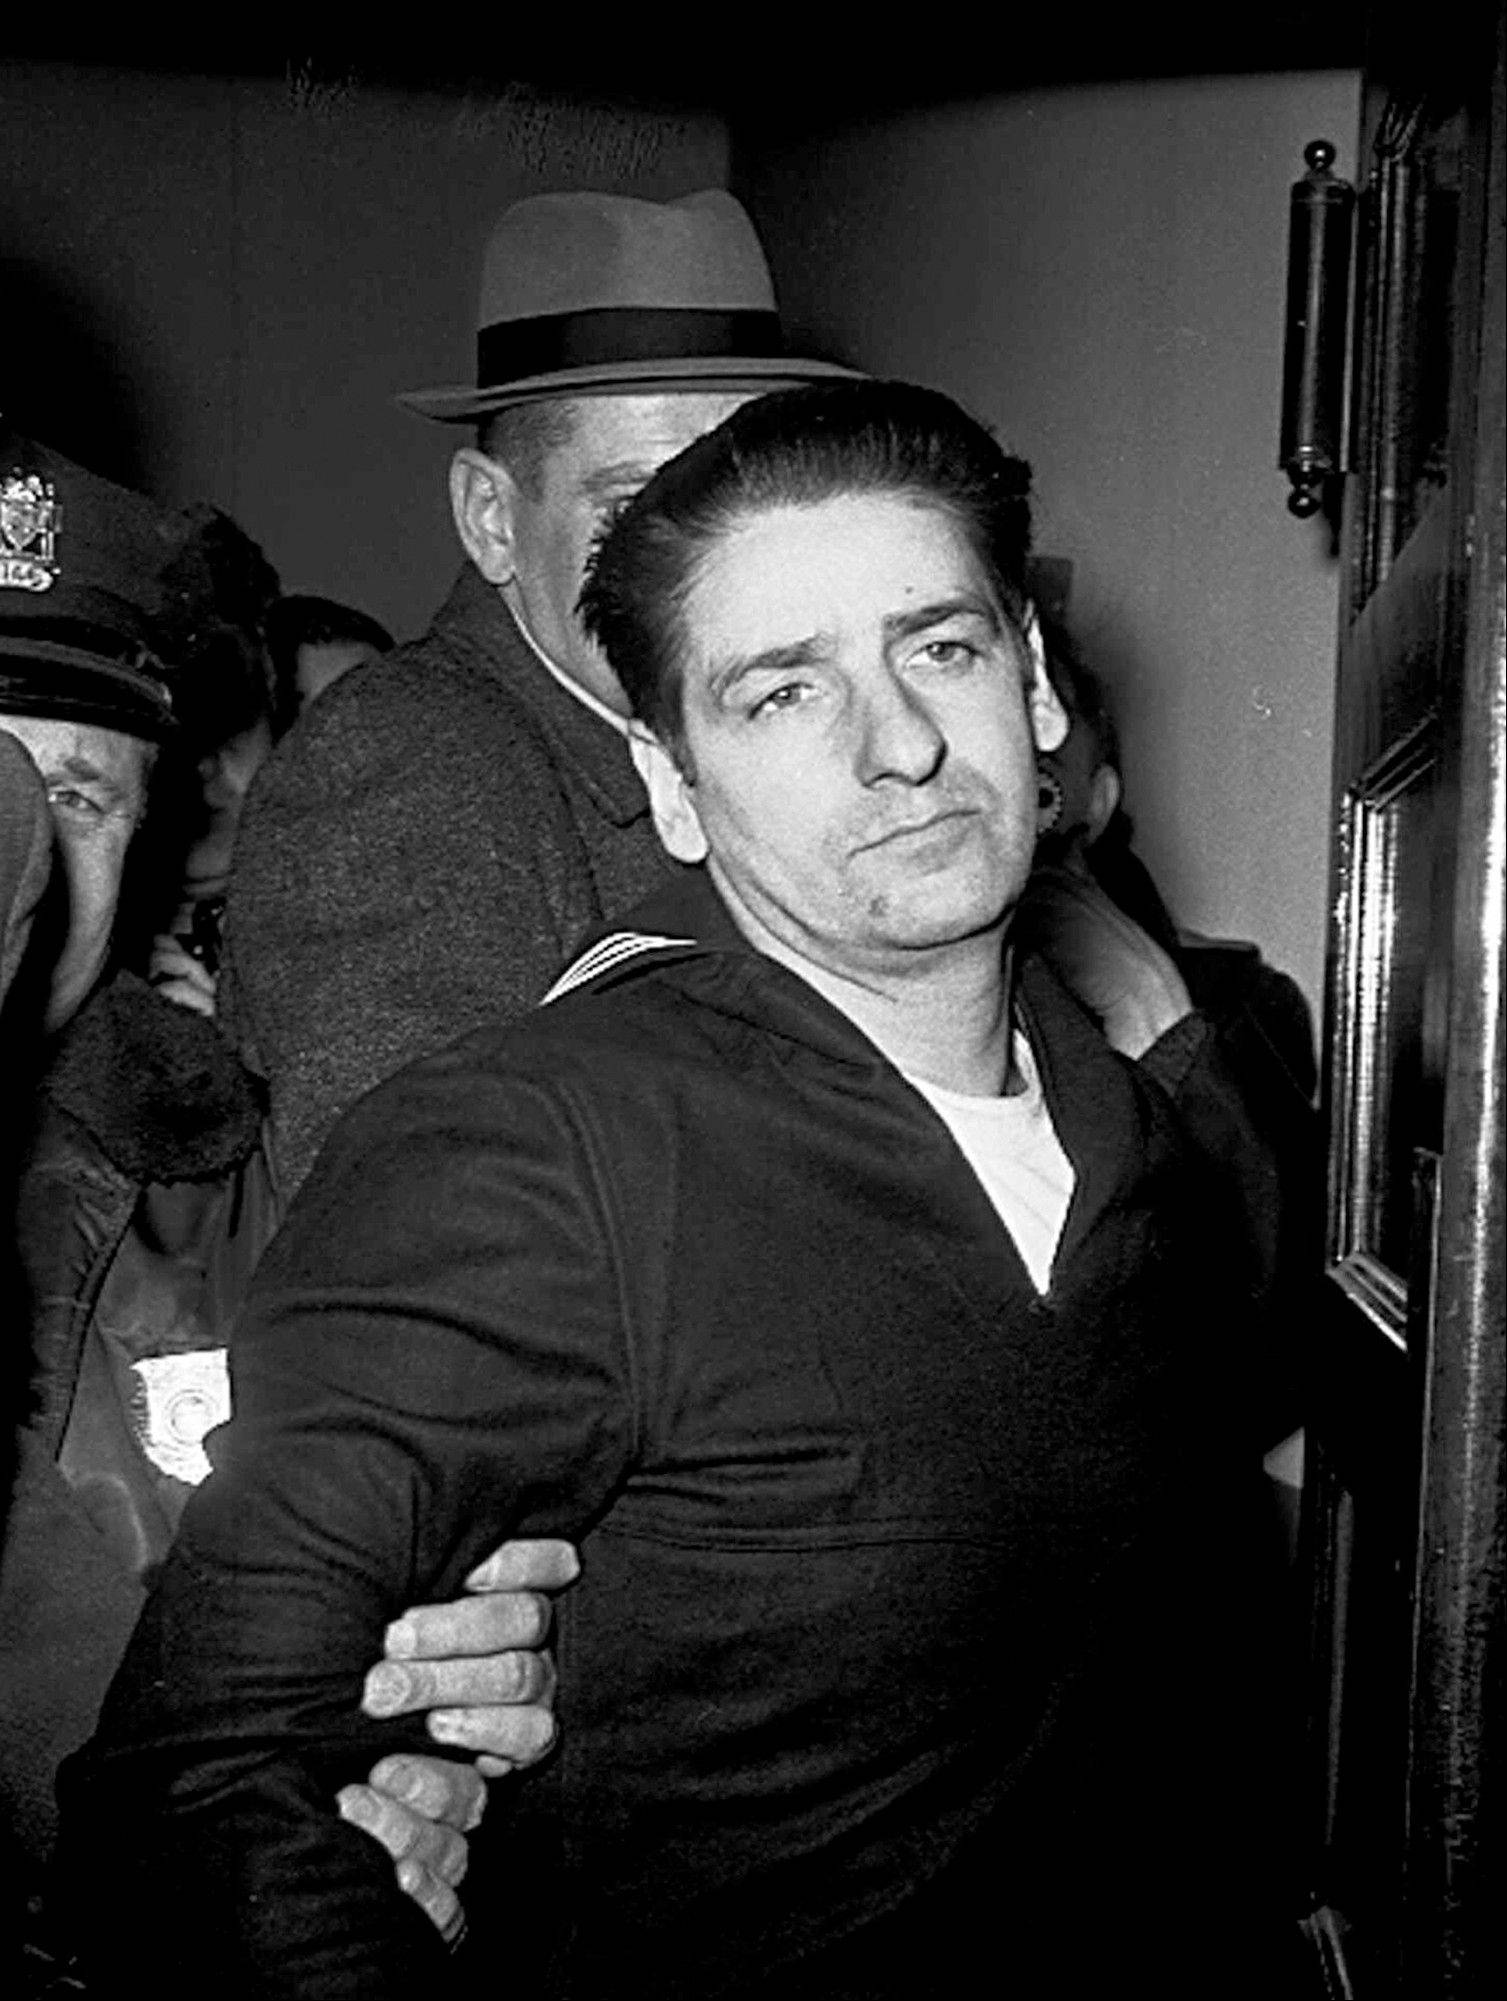 This Feb. 25, 1967, file photo shows self-confessed Boston Strangler Albert DeSalvo minutes after his capture in Boston. DeSalvo confessed to the string of 1960s killings but was never convicted. He died in prison in the 1970s.